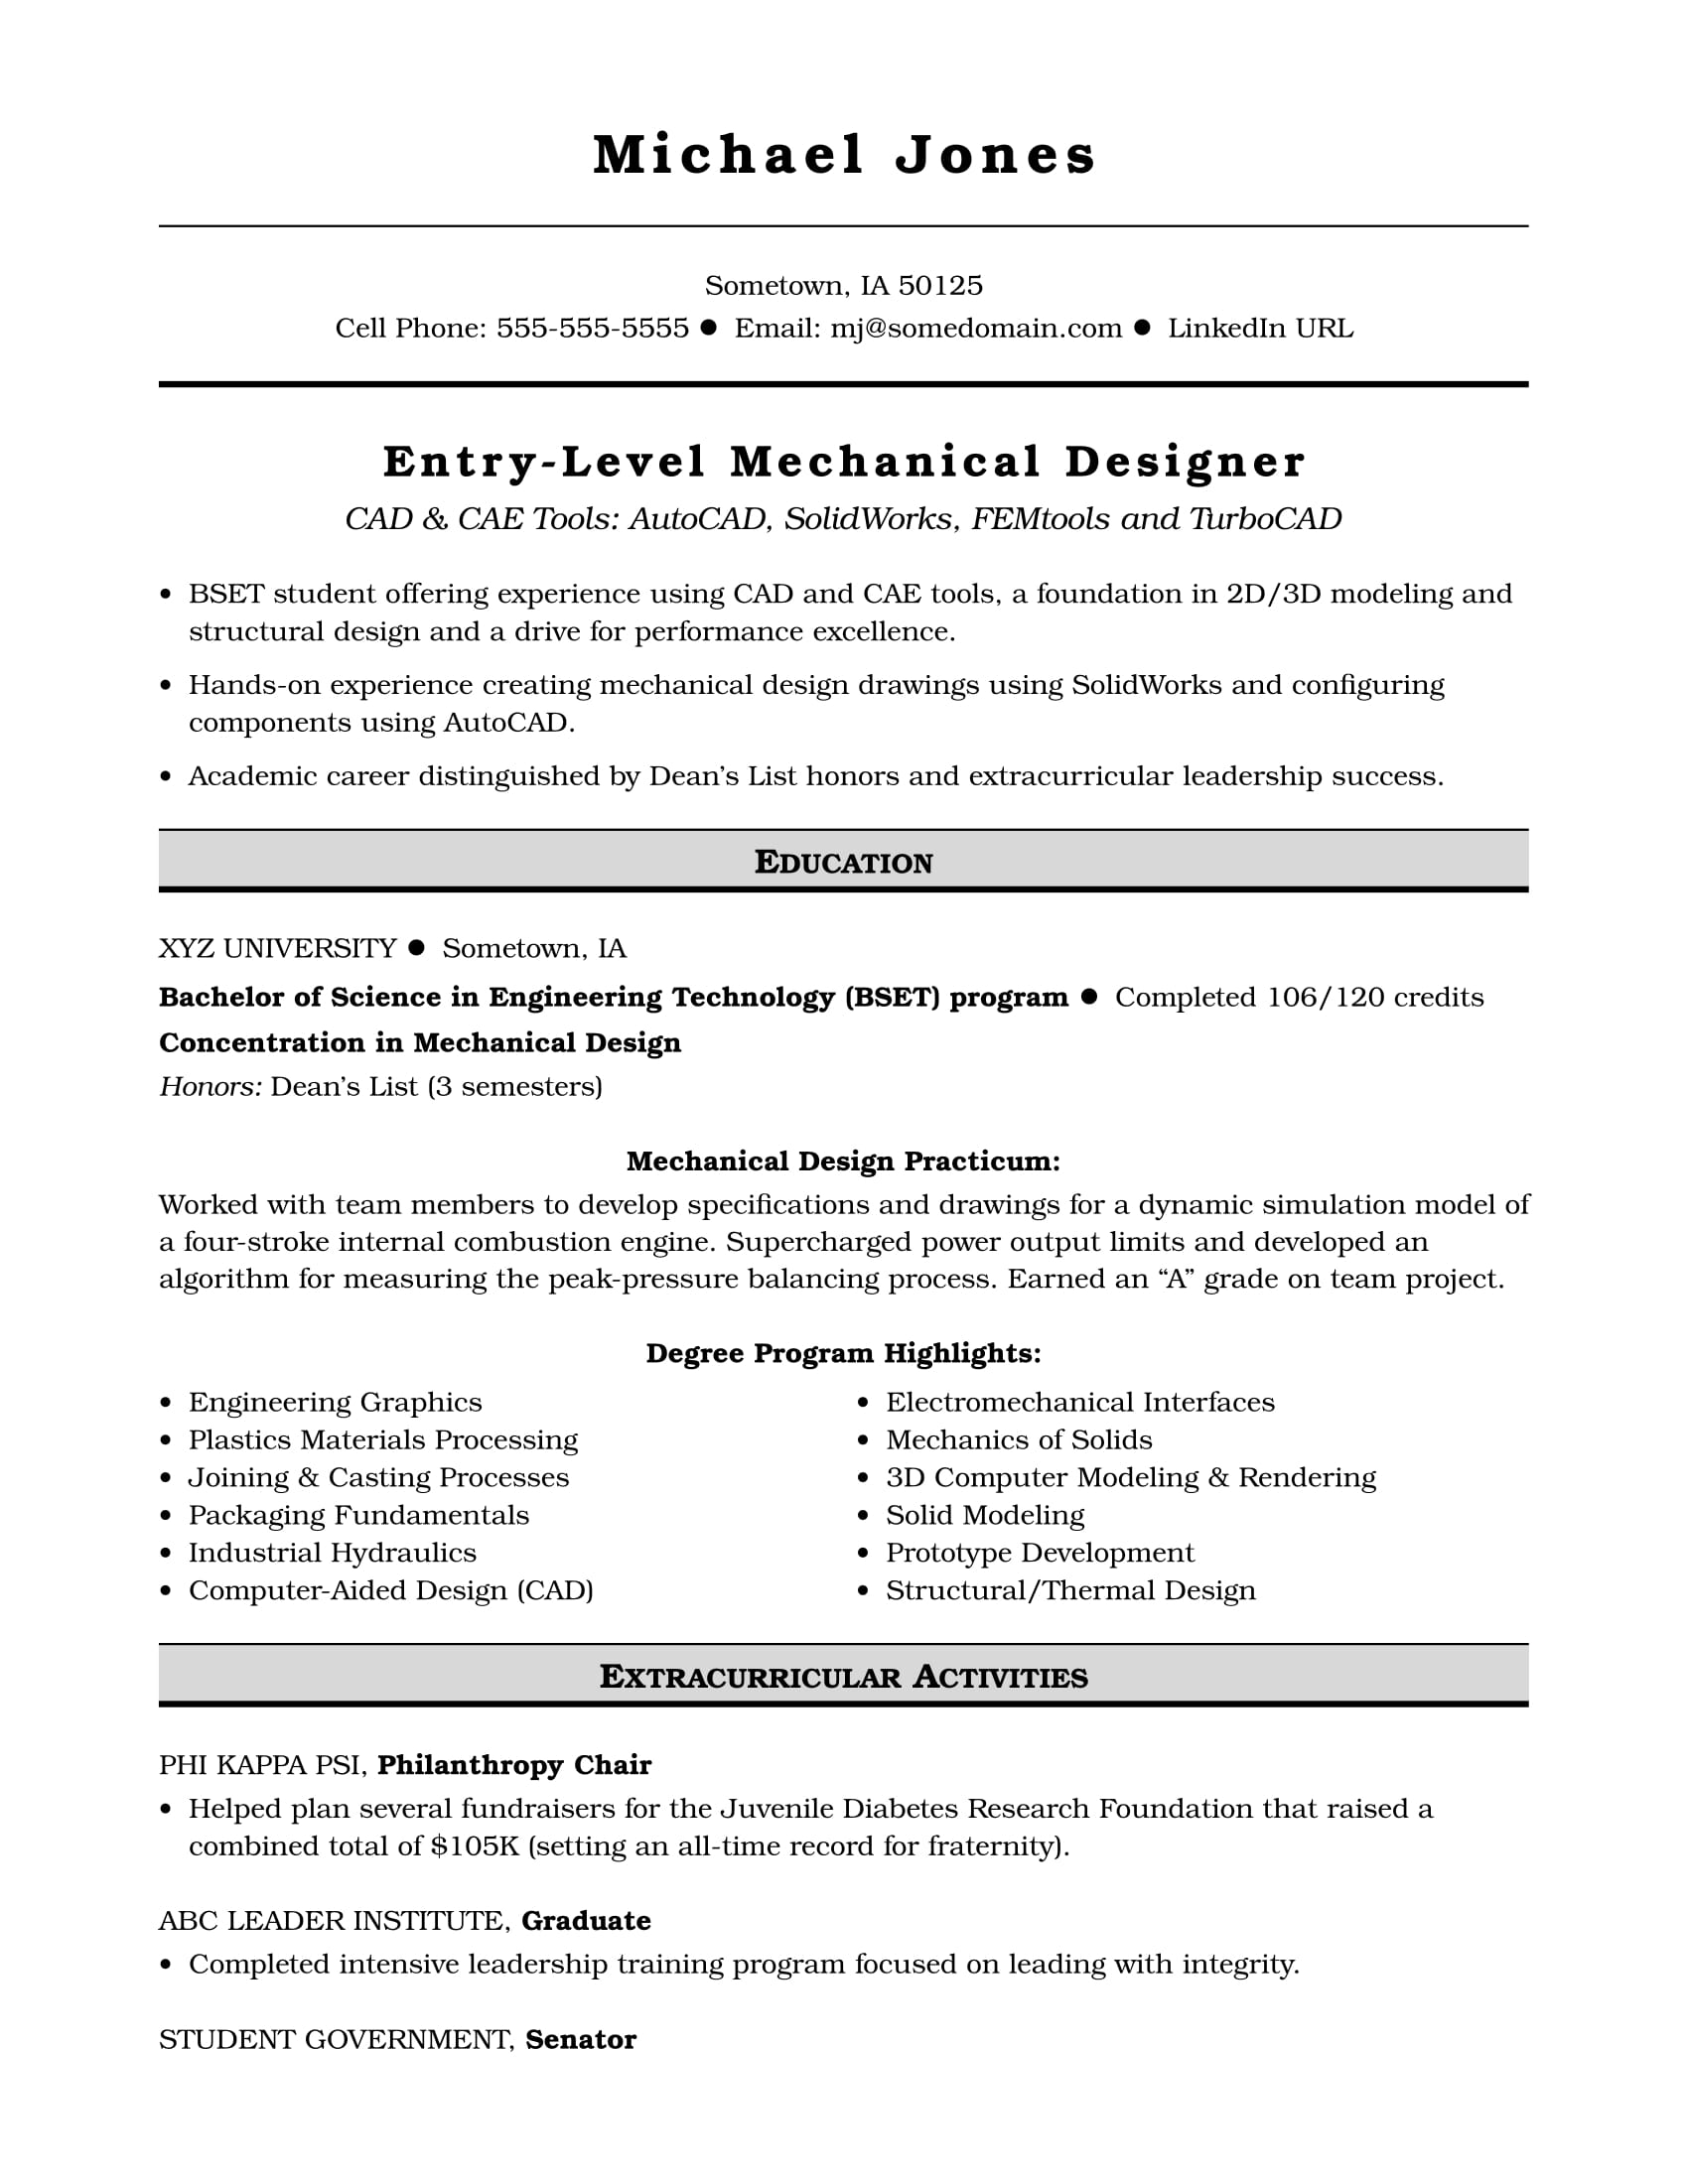 sample resume for an entry level mechanical designer monster another word extracurricular Resume Another Word For Extracurricular Activities On Resume